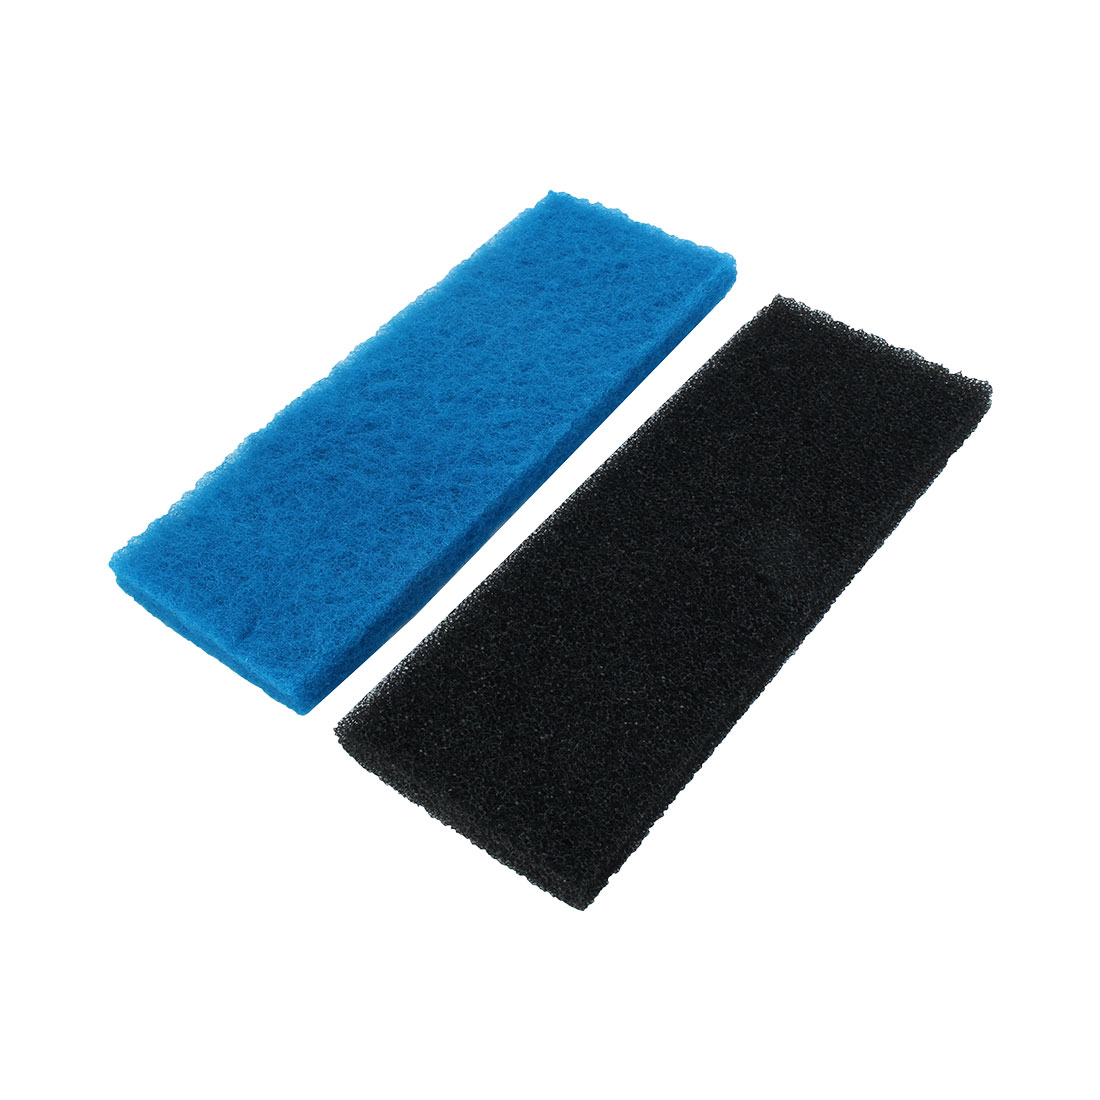 Aquarium Fish Tank Sponge Cotton Biochemical Filter 32cm Length Black Blue